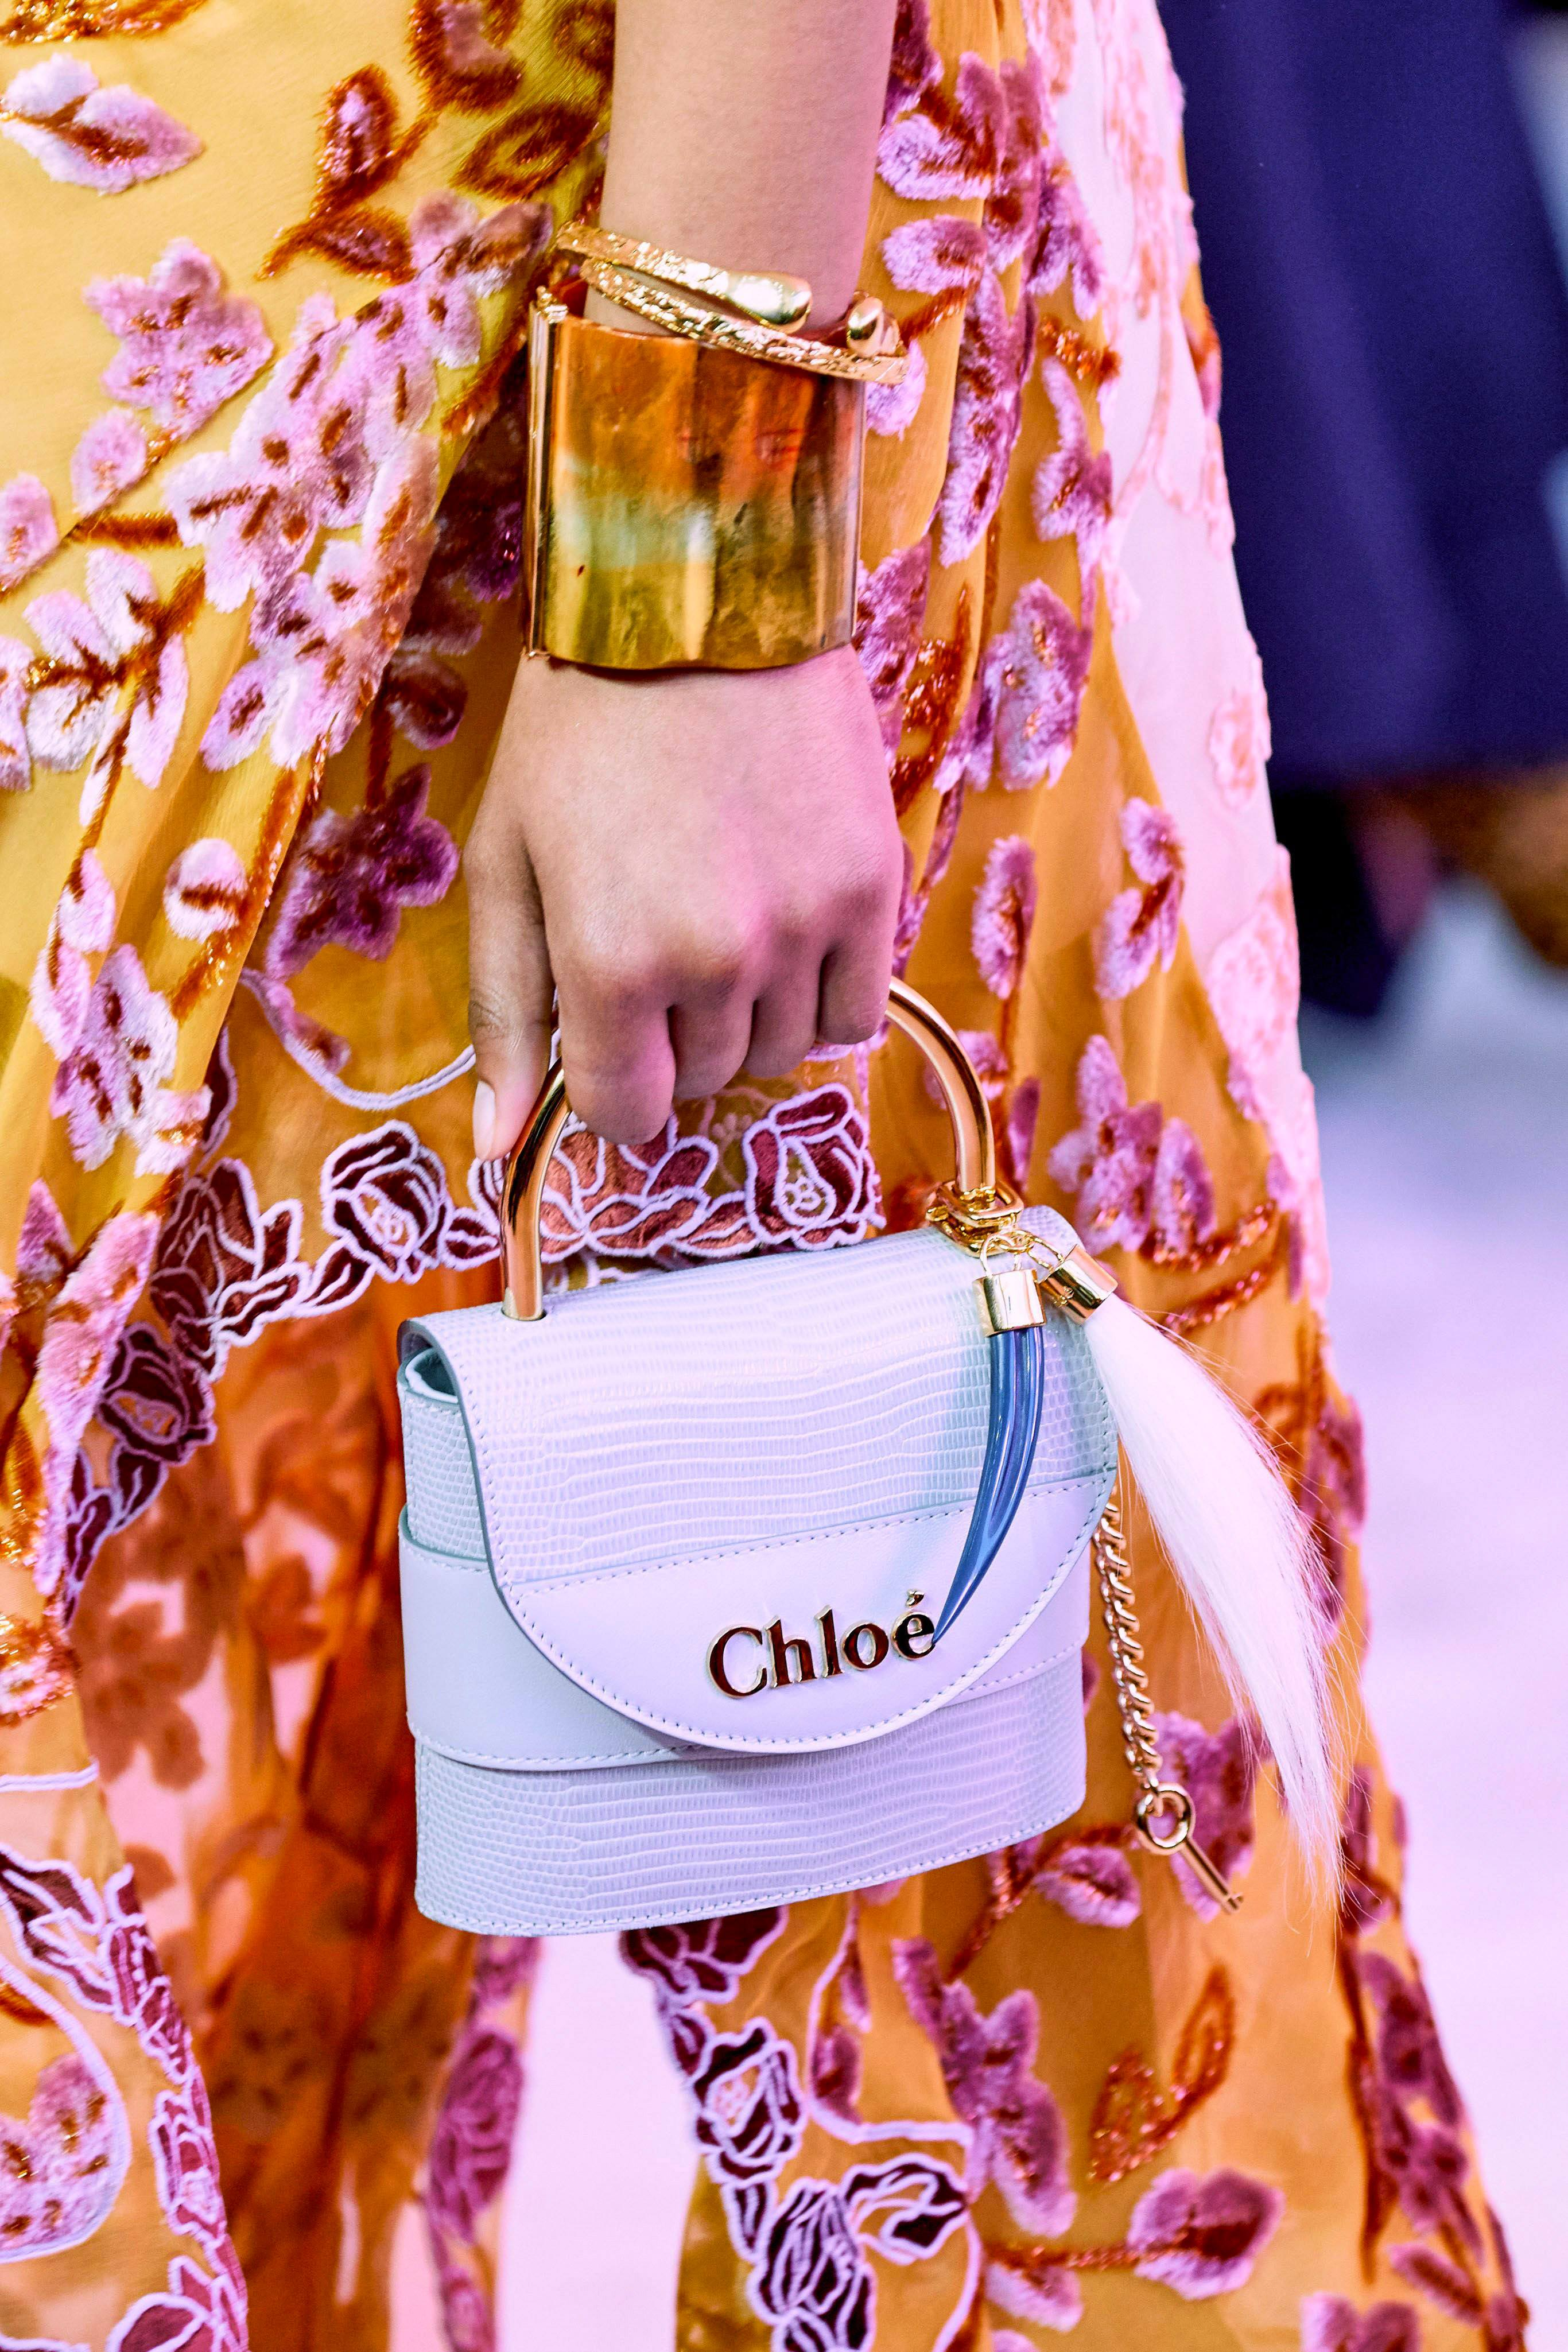 White mini top-handle bag from the Chloé Fall 2019 Runway Bag Collection